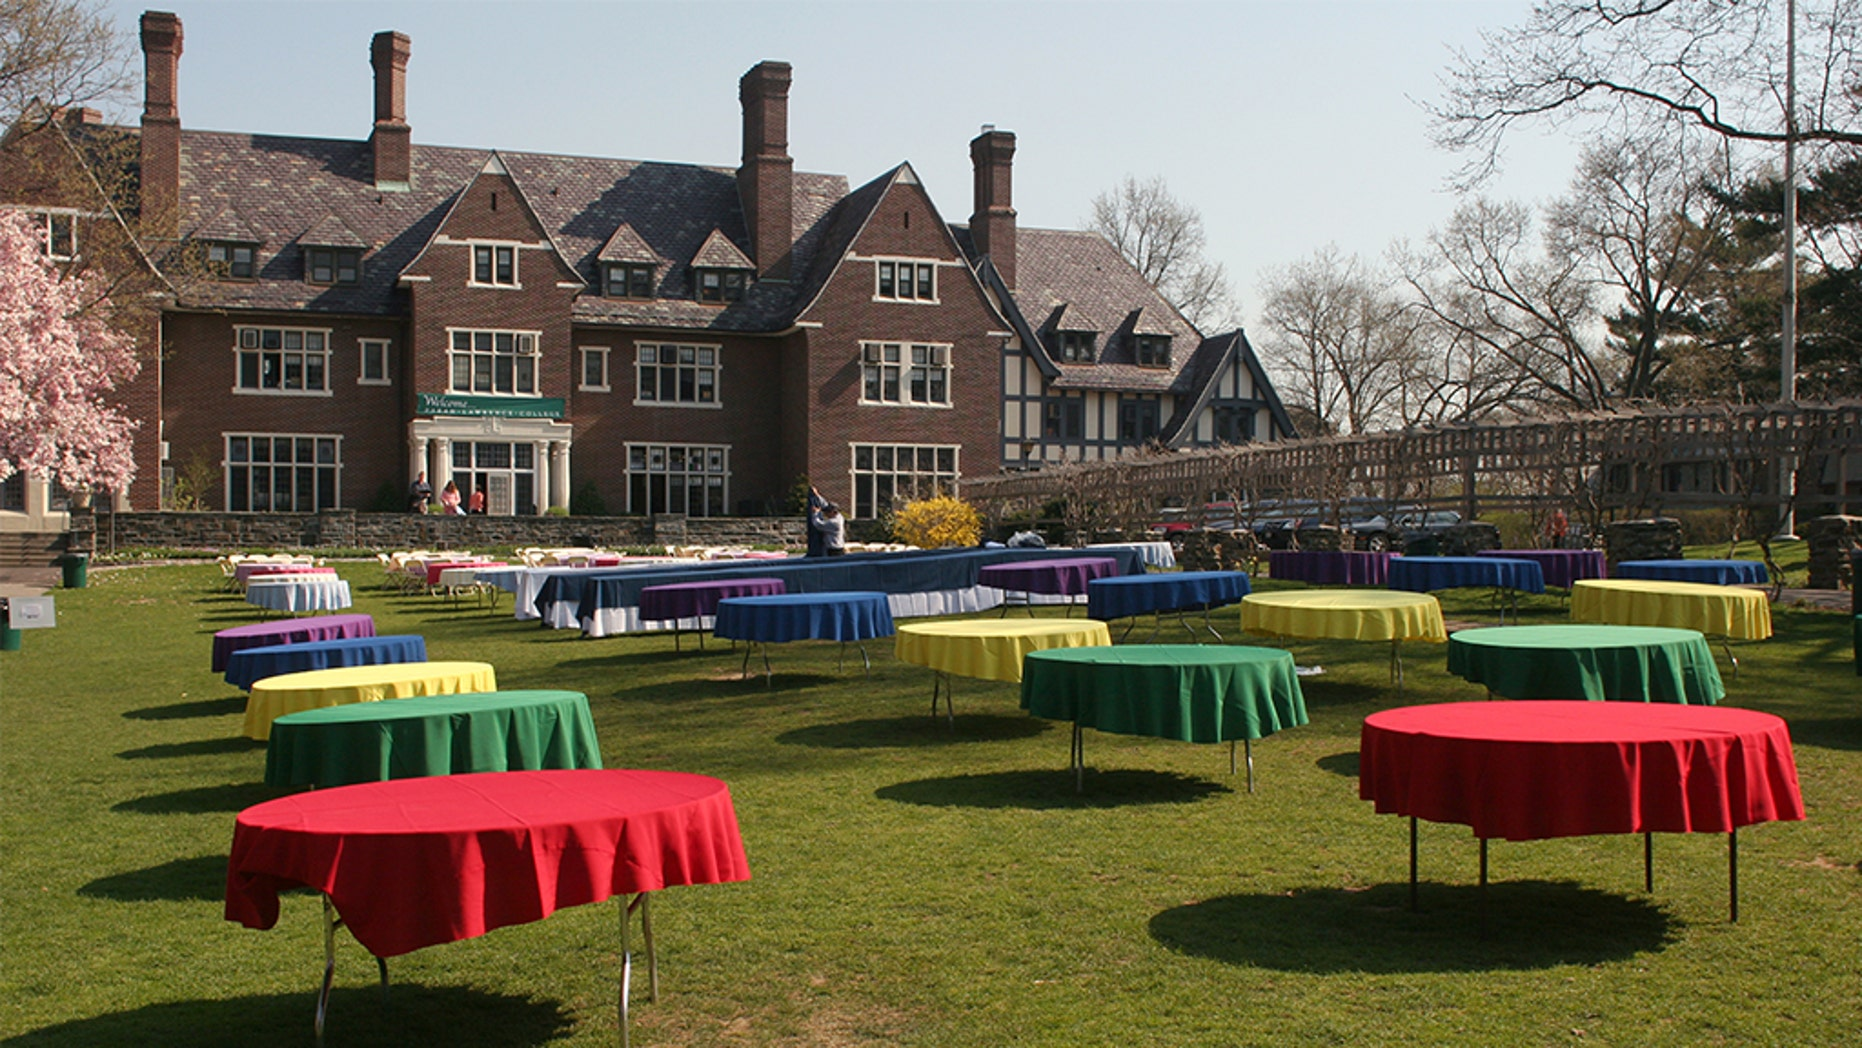 Sarah Lawrence College in Bronxville, N.Y., is a small liberal arts college. With a modest endowment, small seminar classes and a one-on-one tutorial teaching program, it has one of the most expensive tuitions in America. (Photo by Andrew Lichtenstein/Corbis via Getty Images)